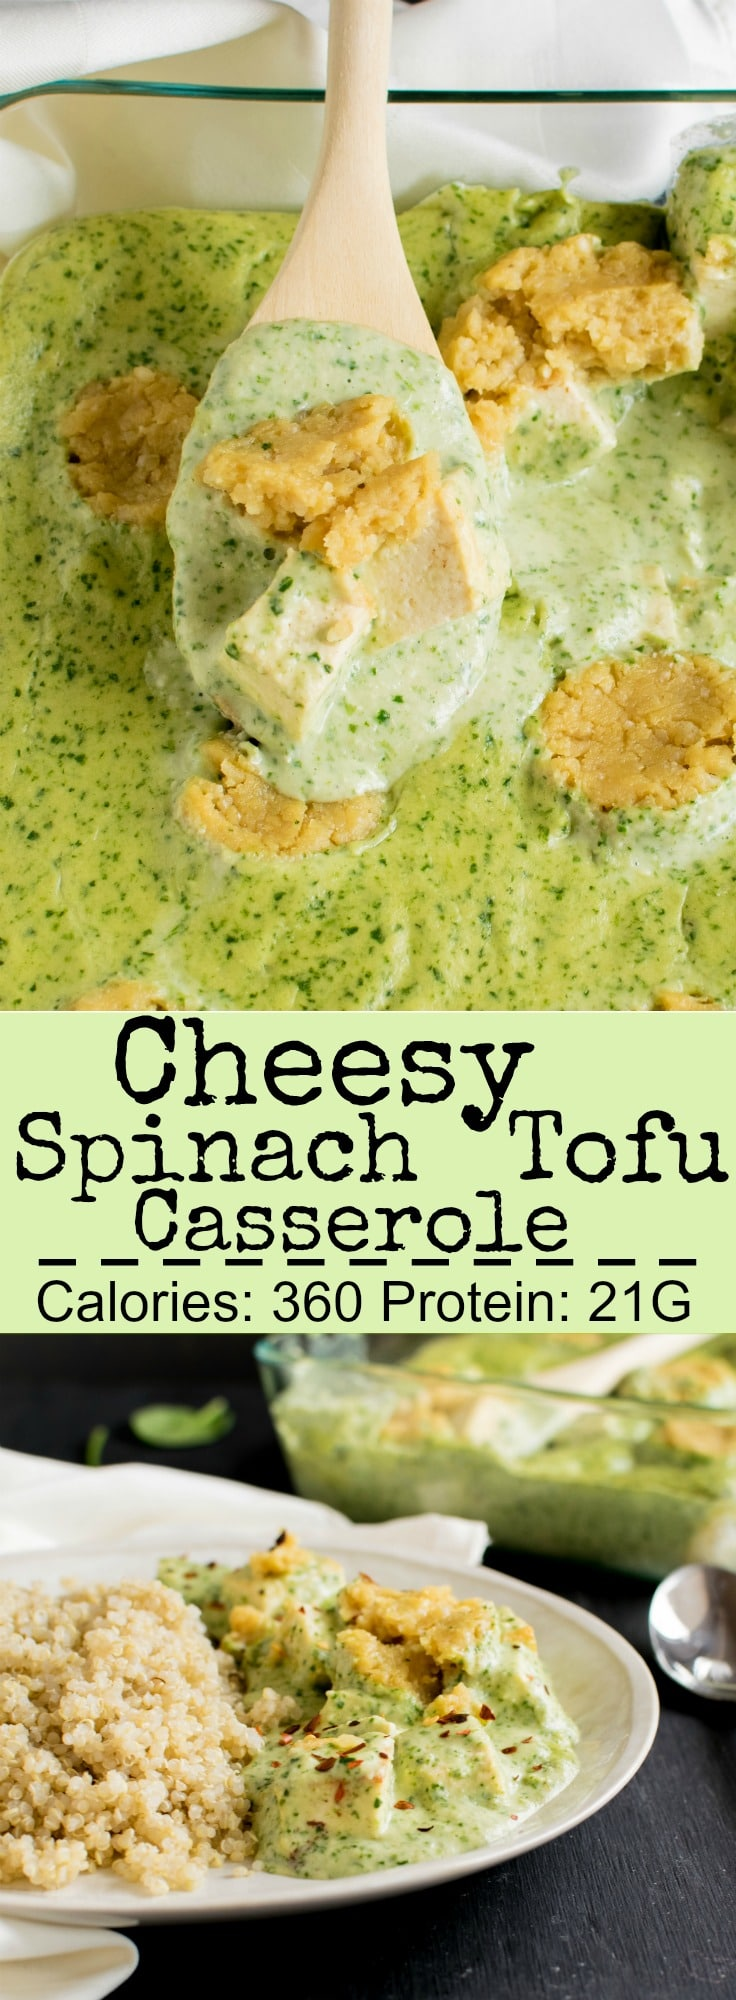 Cheesy Spinach Tofu Casserole | The nutty flavor of this vegan and gluten free entree is worth devouring. My family loves this outstanding entree when paired with quinoa | kiipfit.com